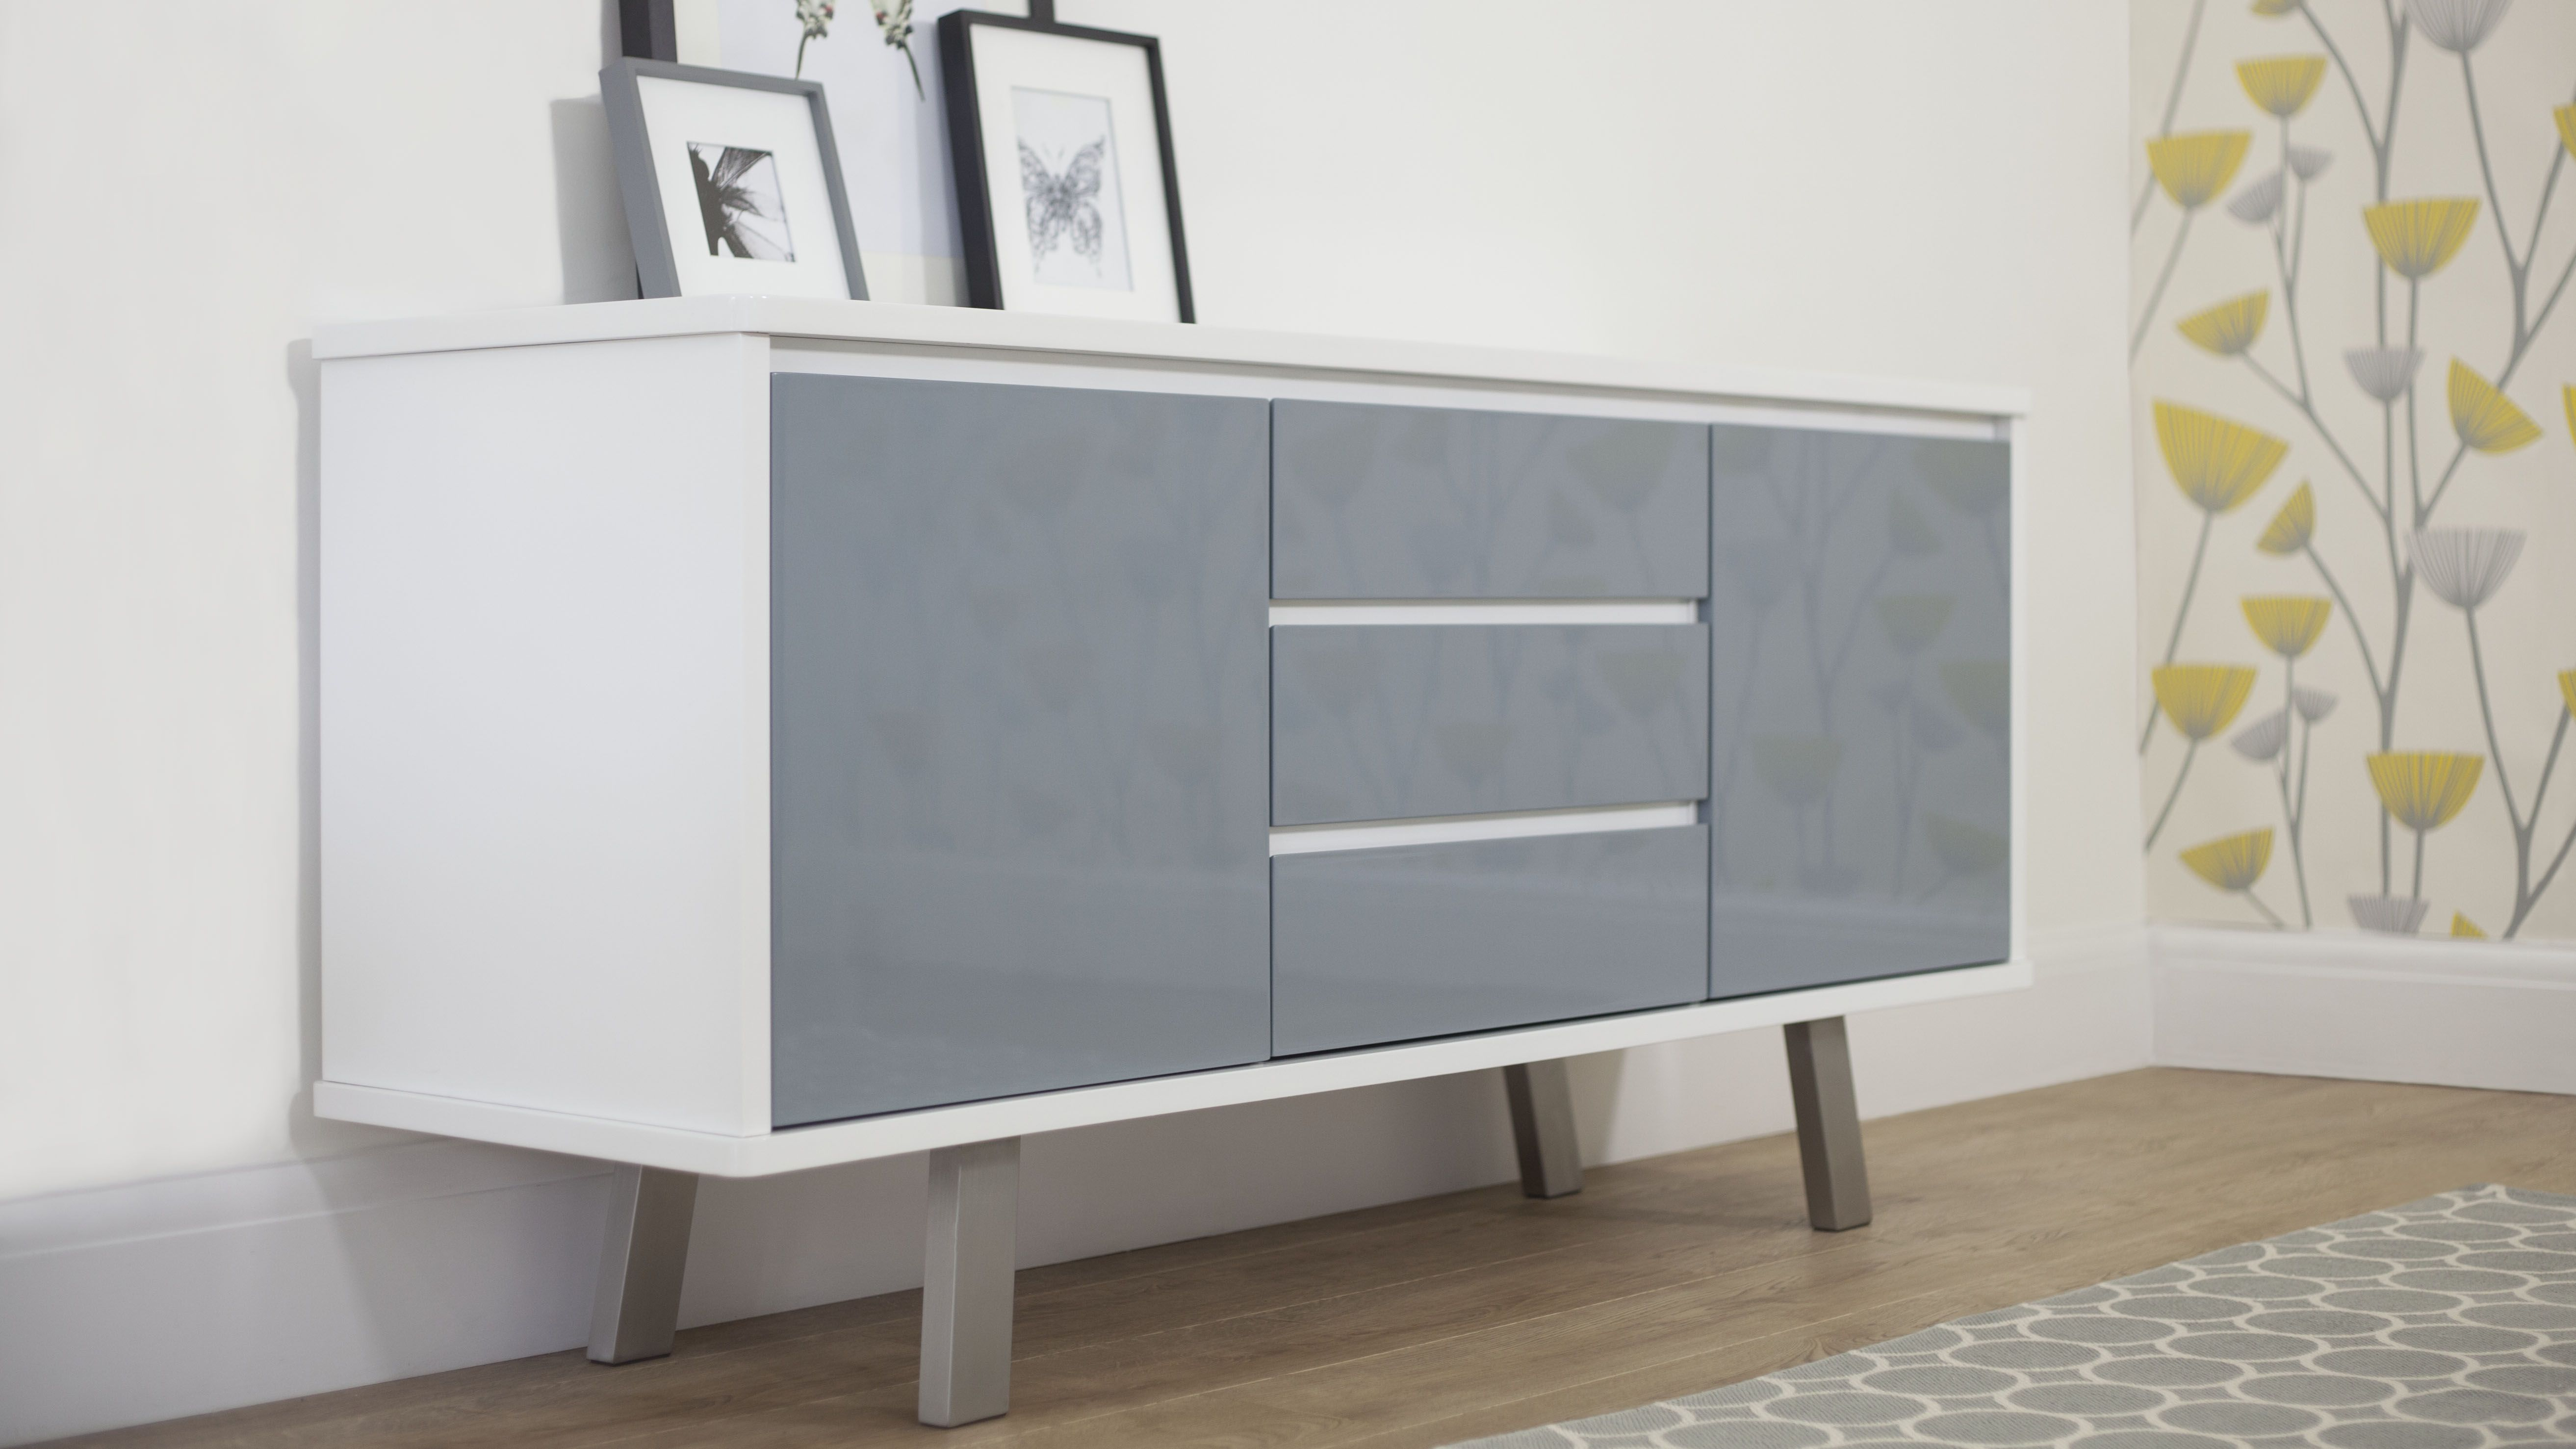 Assi White And Grey Gloss Sideboard | Danetti | Stylish Within Mid Century Modern Glossy White Buffets (View 23 of 30)